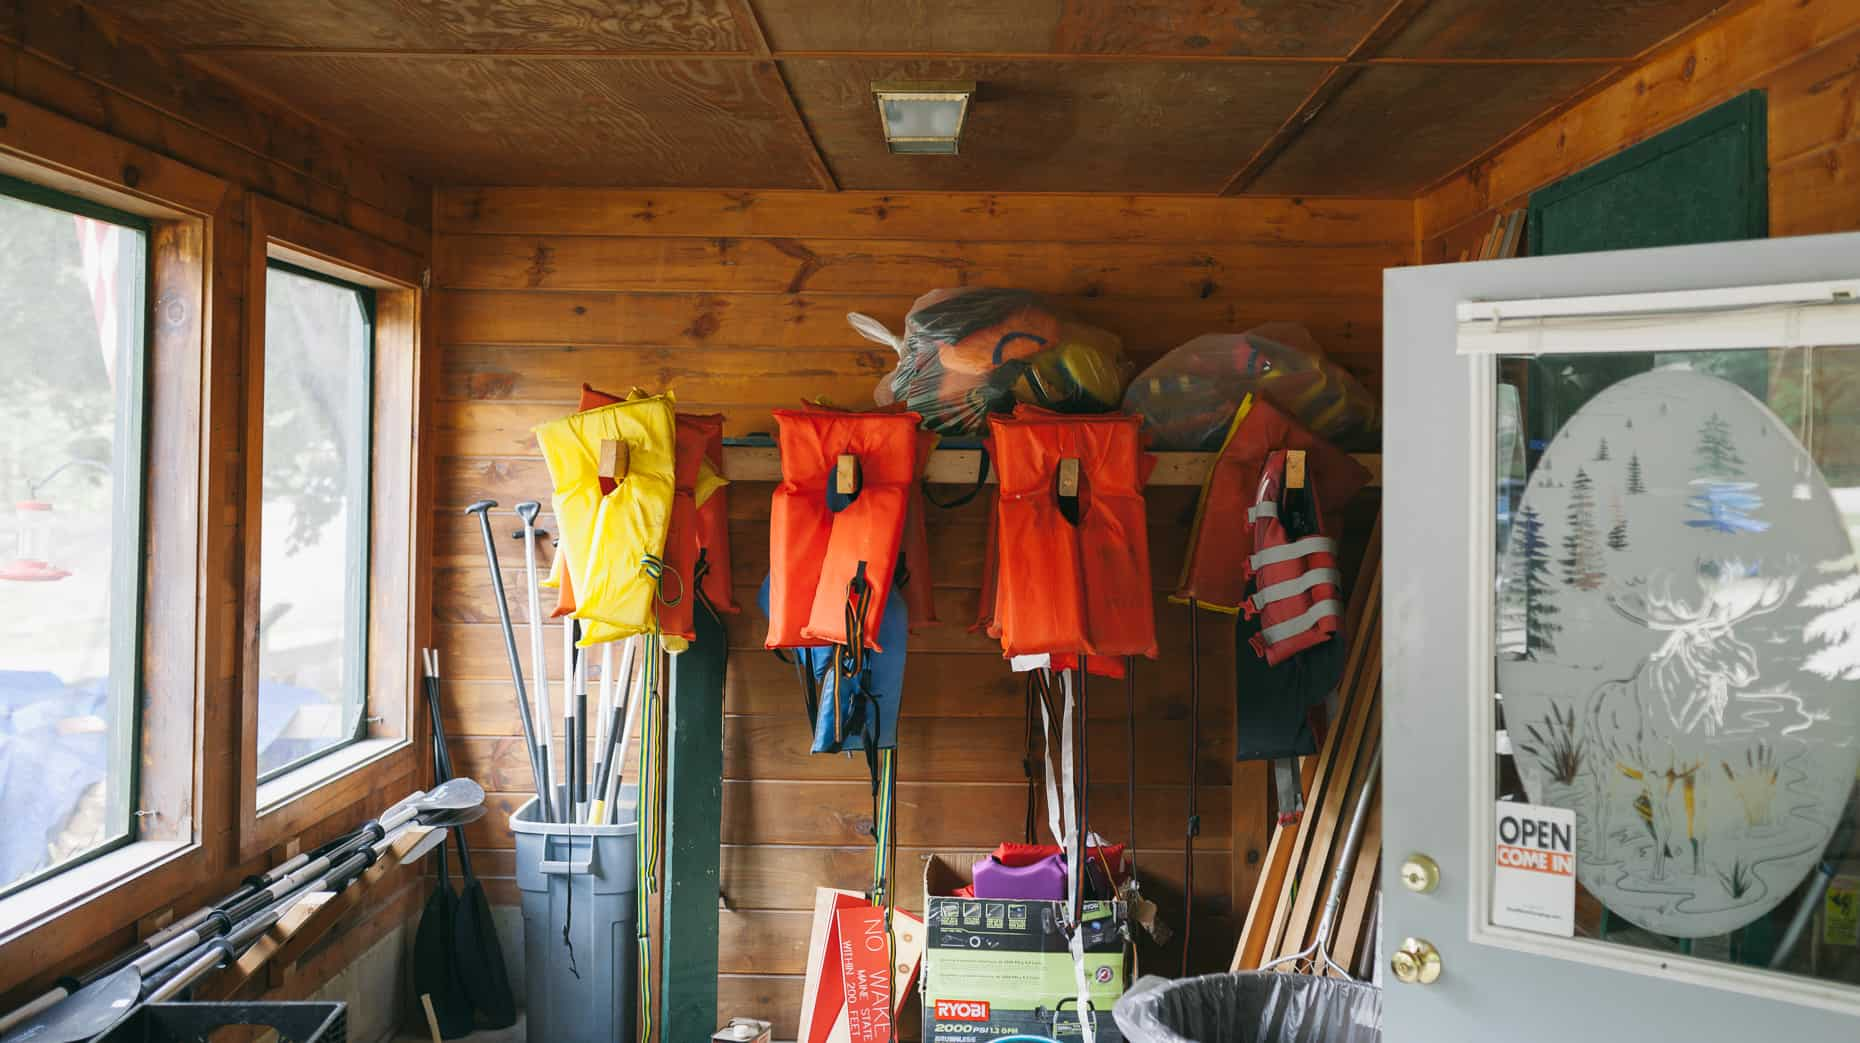 Life jackets in the entrance of Black Brook Campground general store.